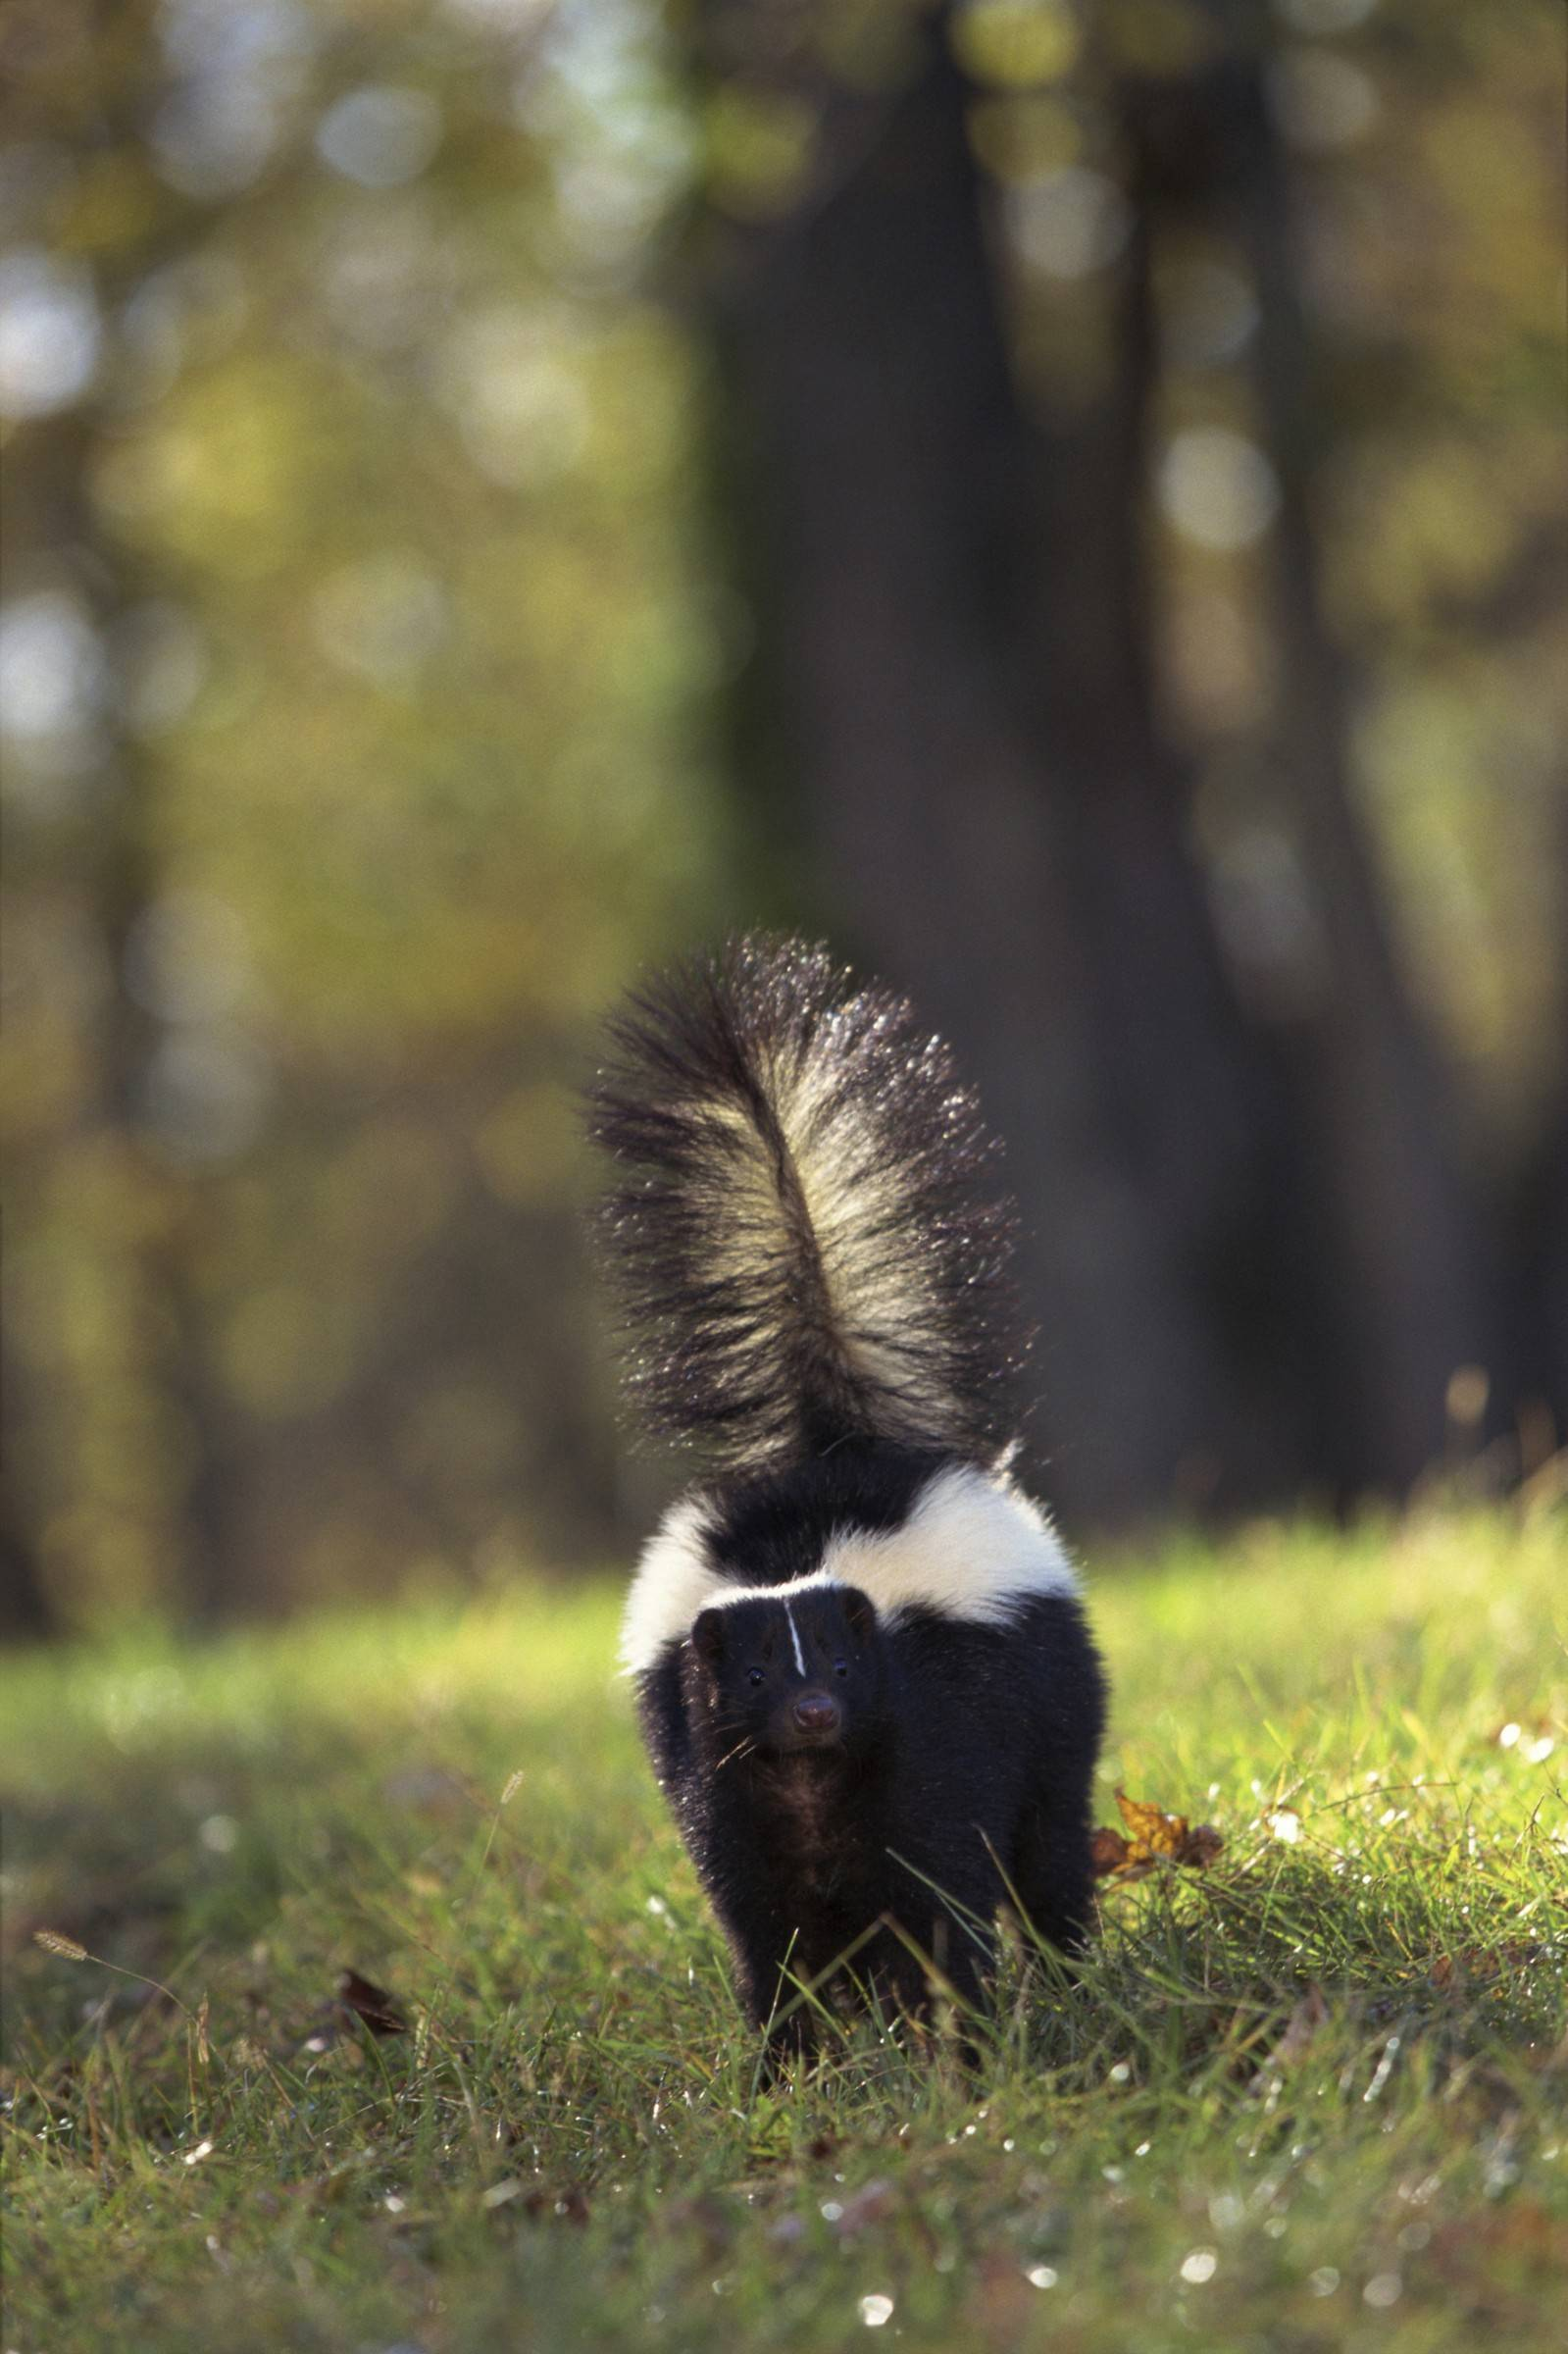 Skunks sightings are on the rise in Vernon Hills, prompting village officials to consider resuming a skunk removal program launched last fall. The program reimburses residents up to $75 for each skunk removed from their property.